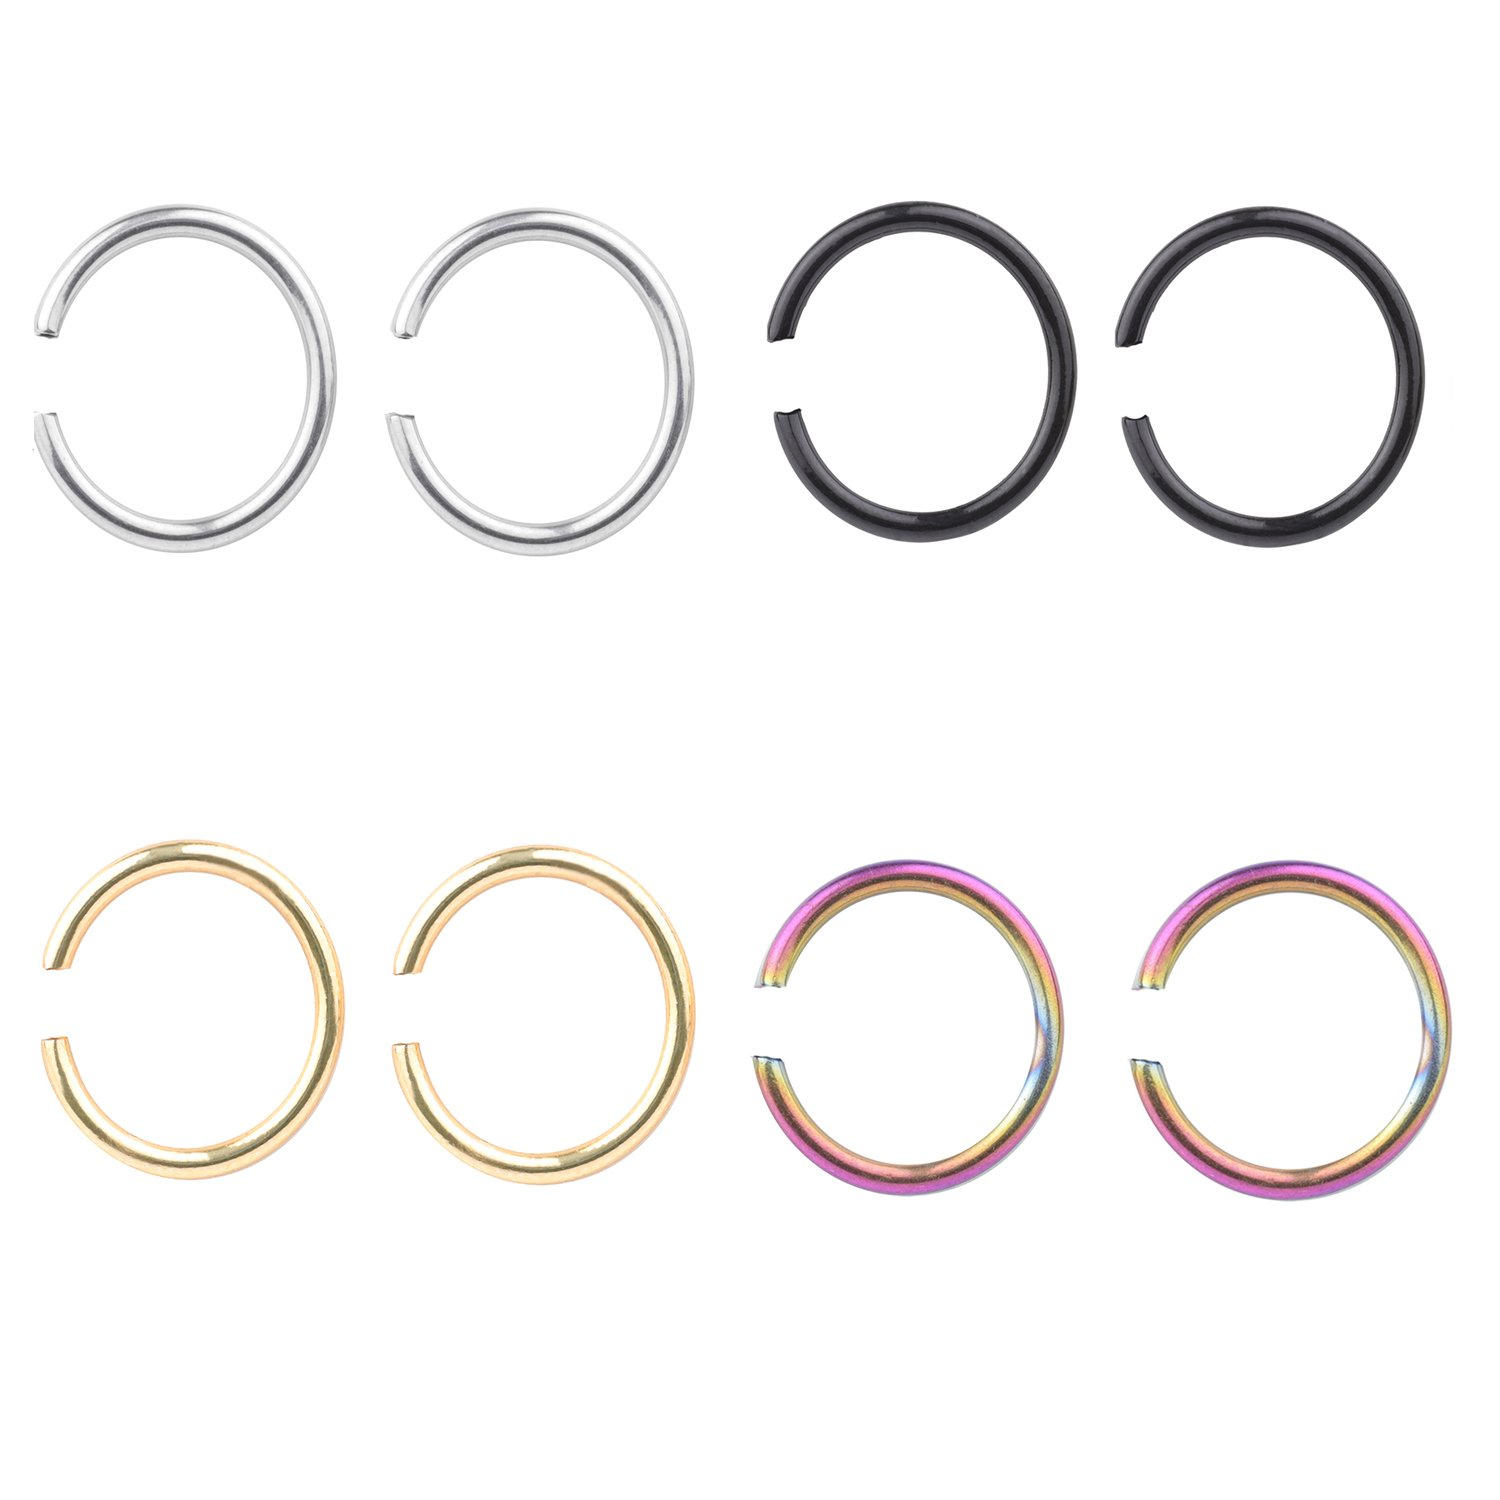 16G Surgical Stainless Round Ends Stainless Steel Body Jewelry Piercing Nose Hoop Ring 8mm